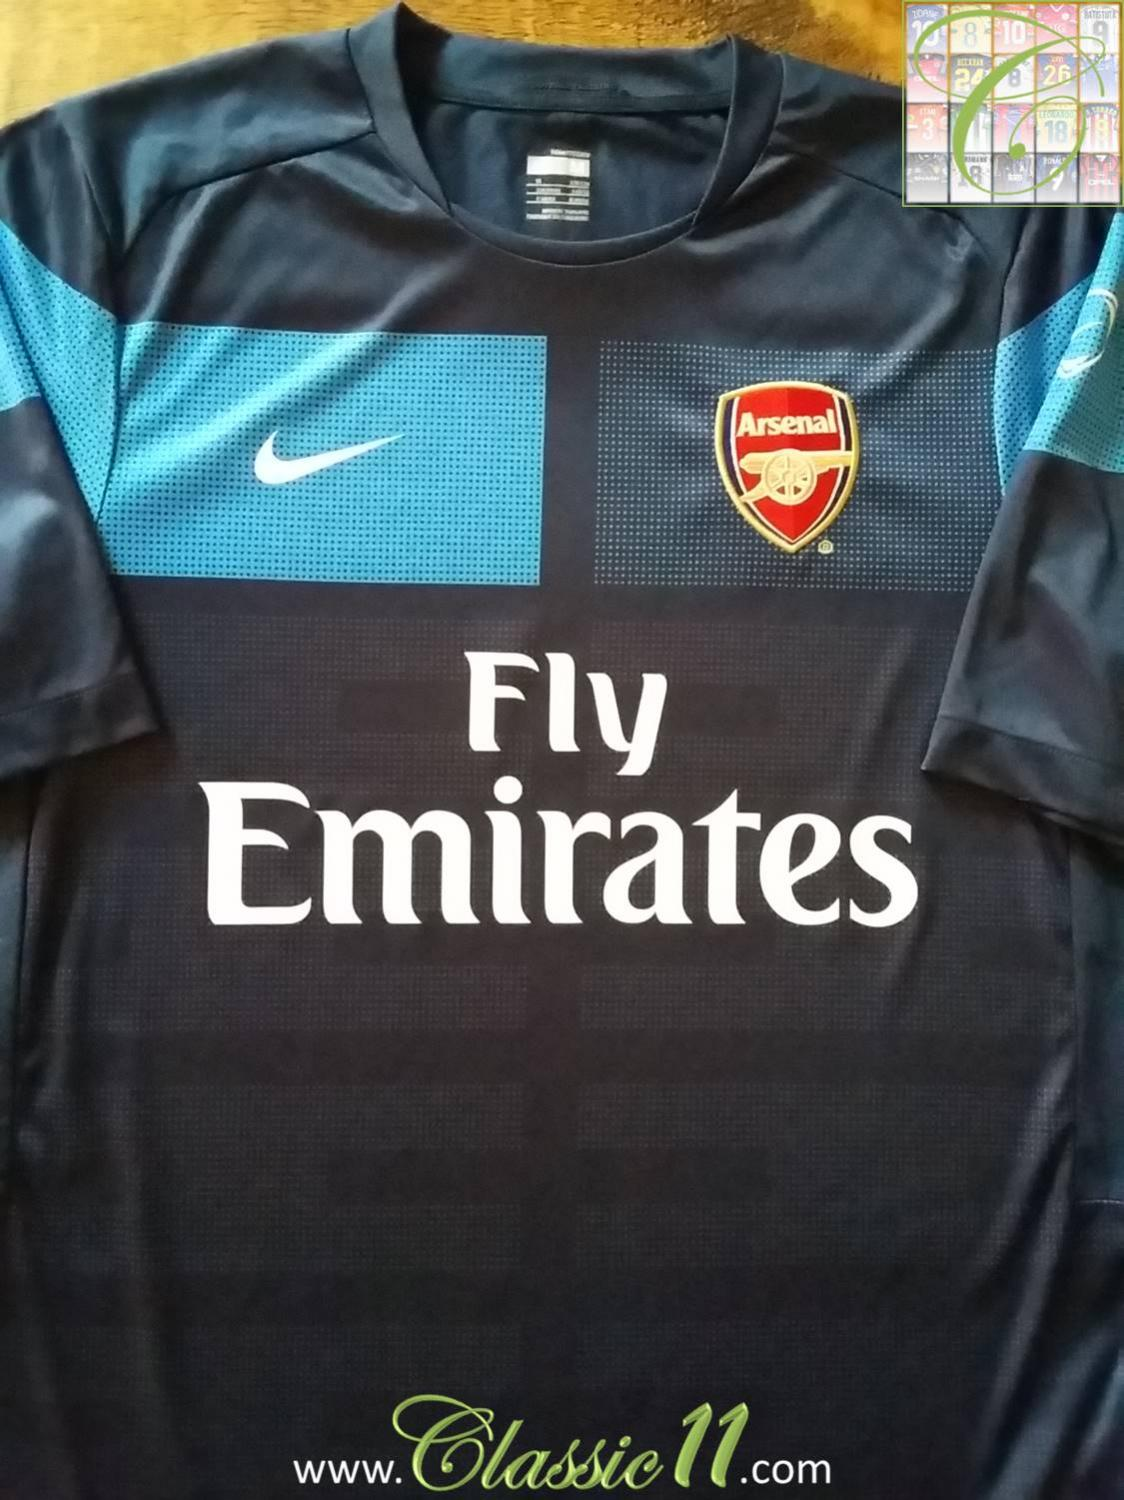 fa5111c1a25 Arsenal Training Leisure Maillot de foot 2009 - 2010.